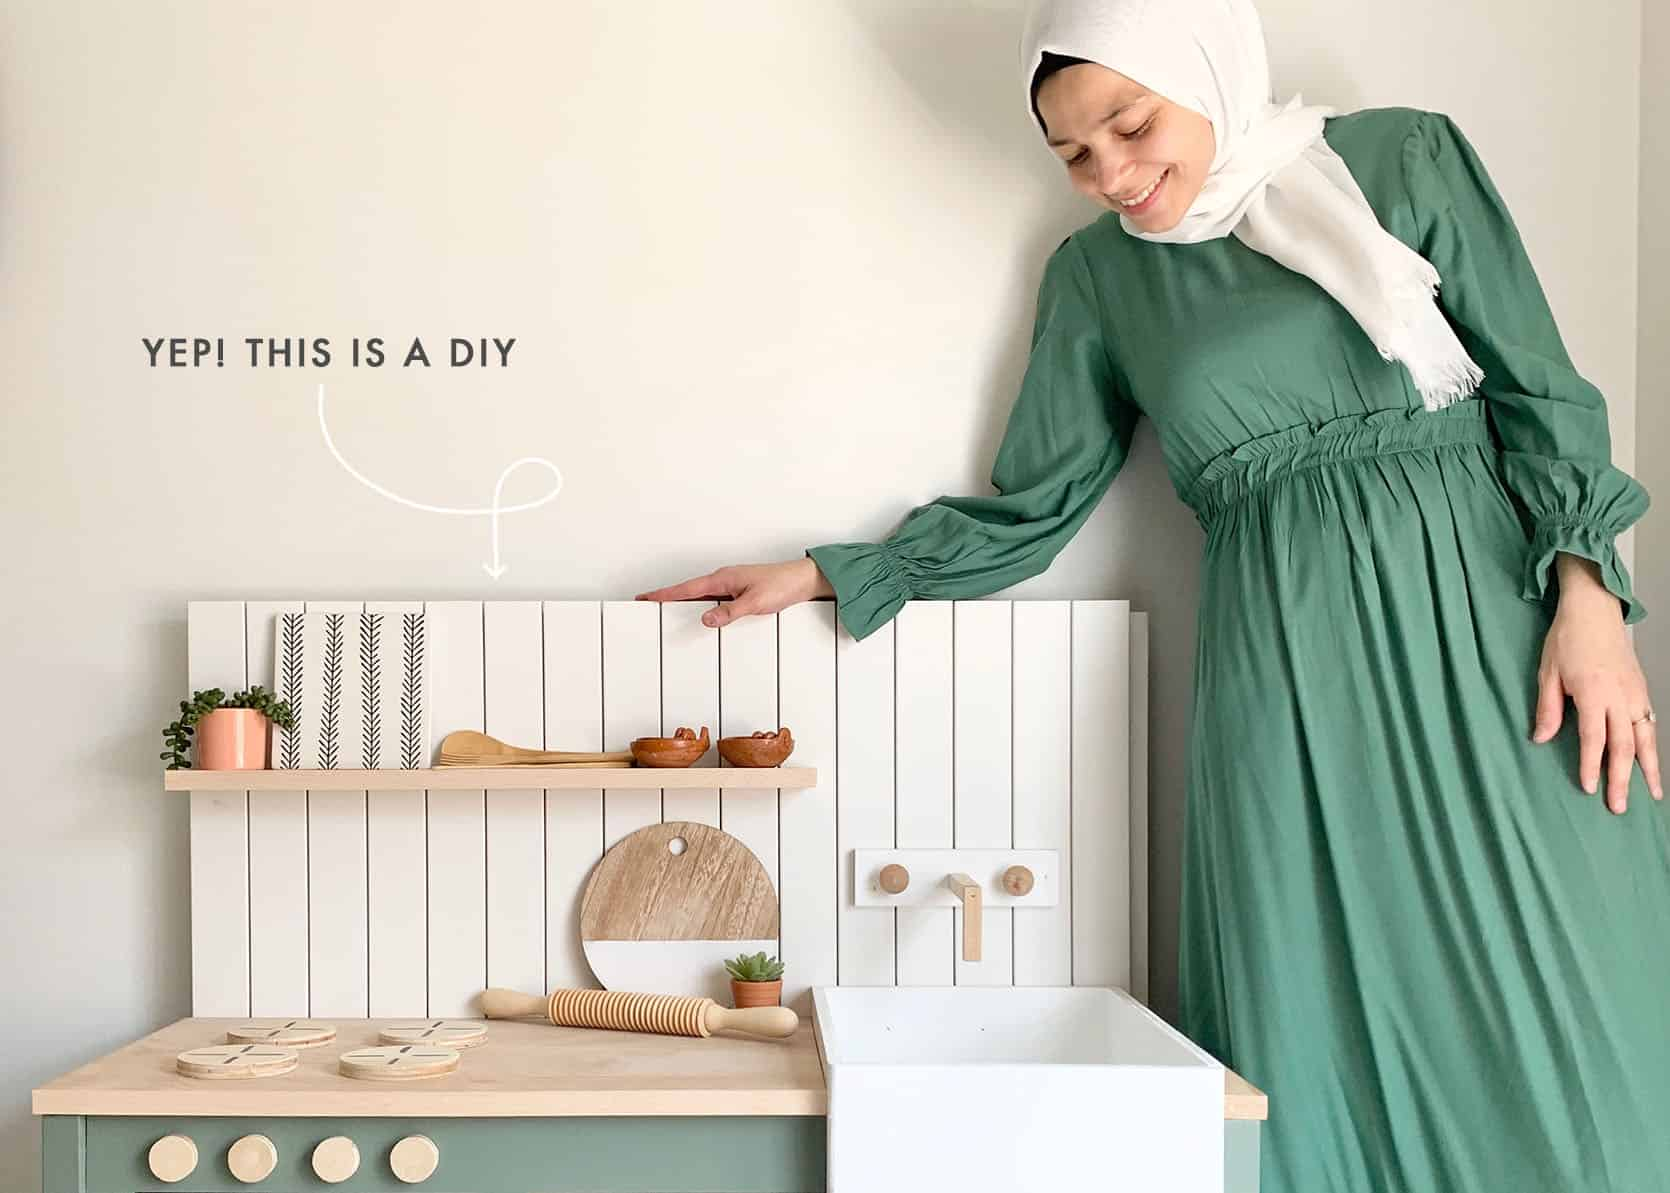 """Saving For Your Dream Kitchen"""" DIY A Mini Version For Your Kids (Imelda's Here To Show You How)"""